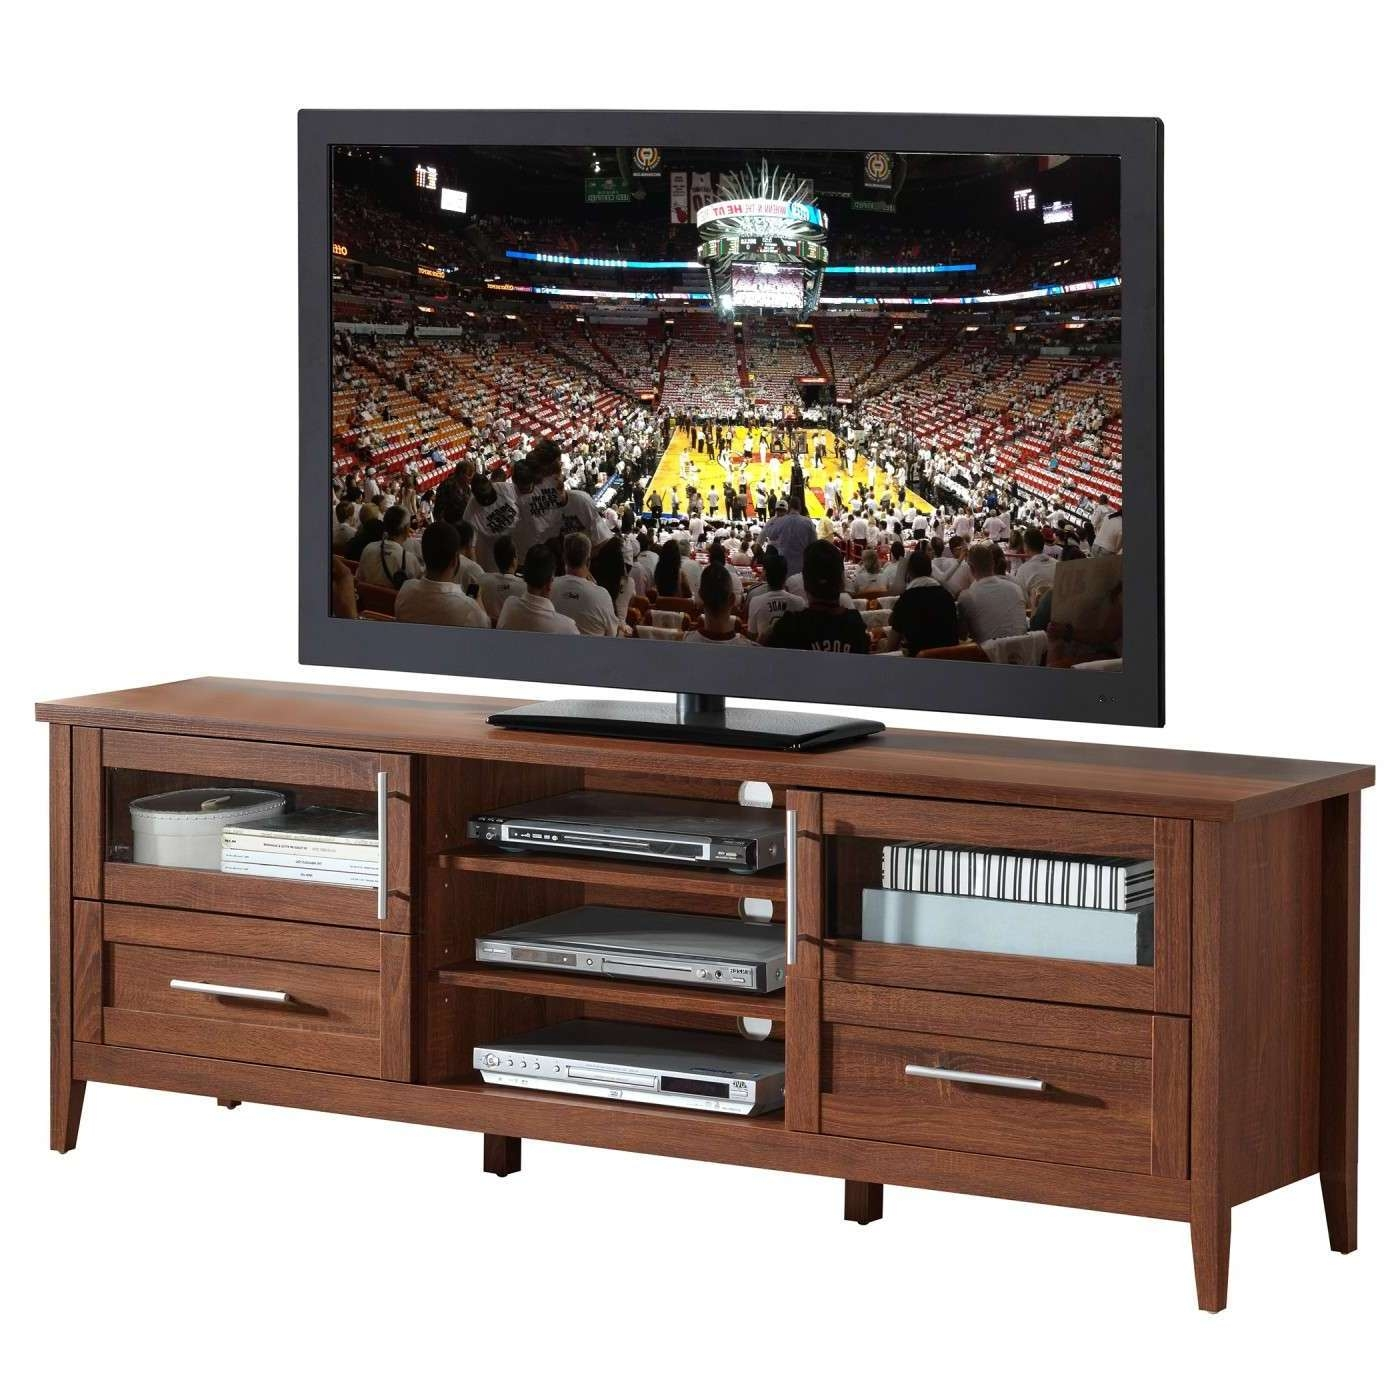 Techni Mobili Modern Oak Tv Stand With Storage For Tvs Up To 75 Pertaining To Modern Oak Tv Stands (View 11 of 15)